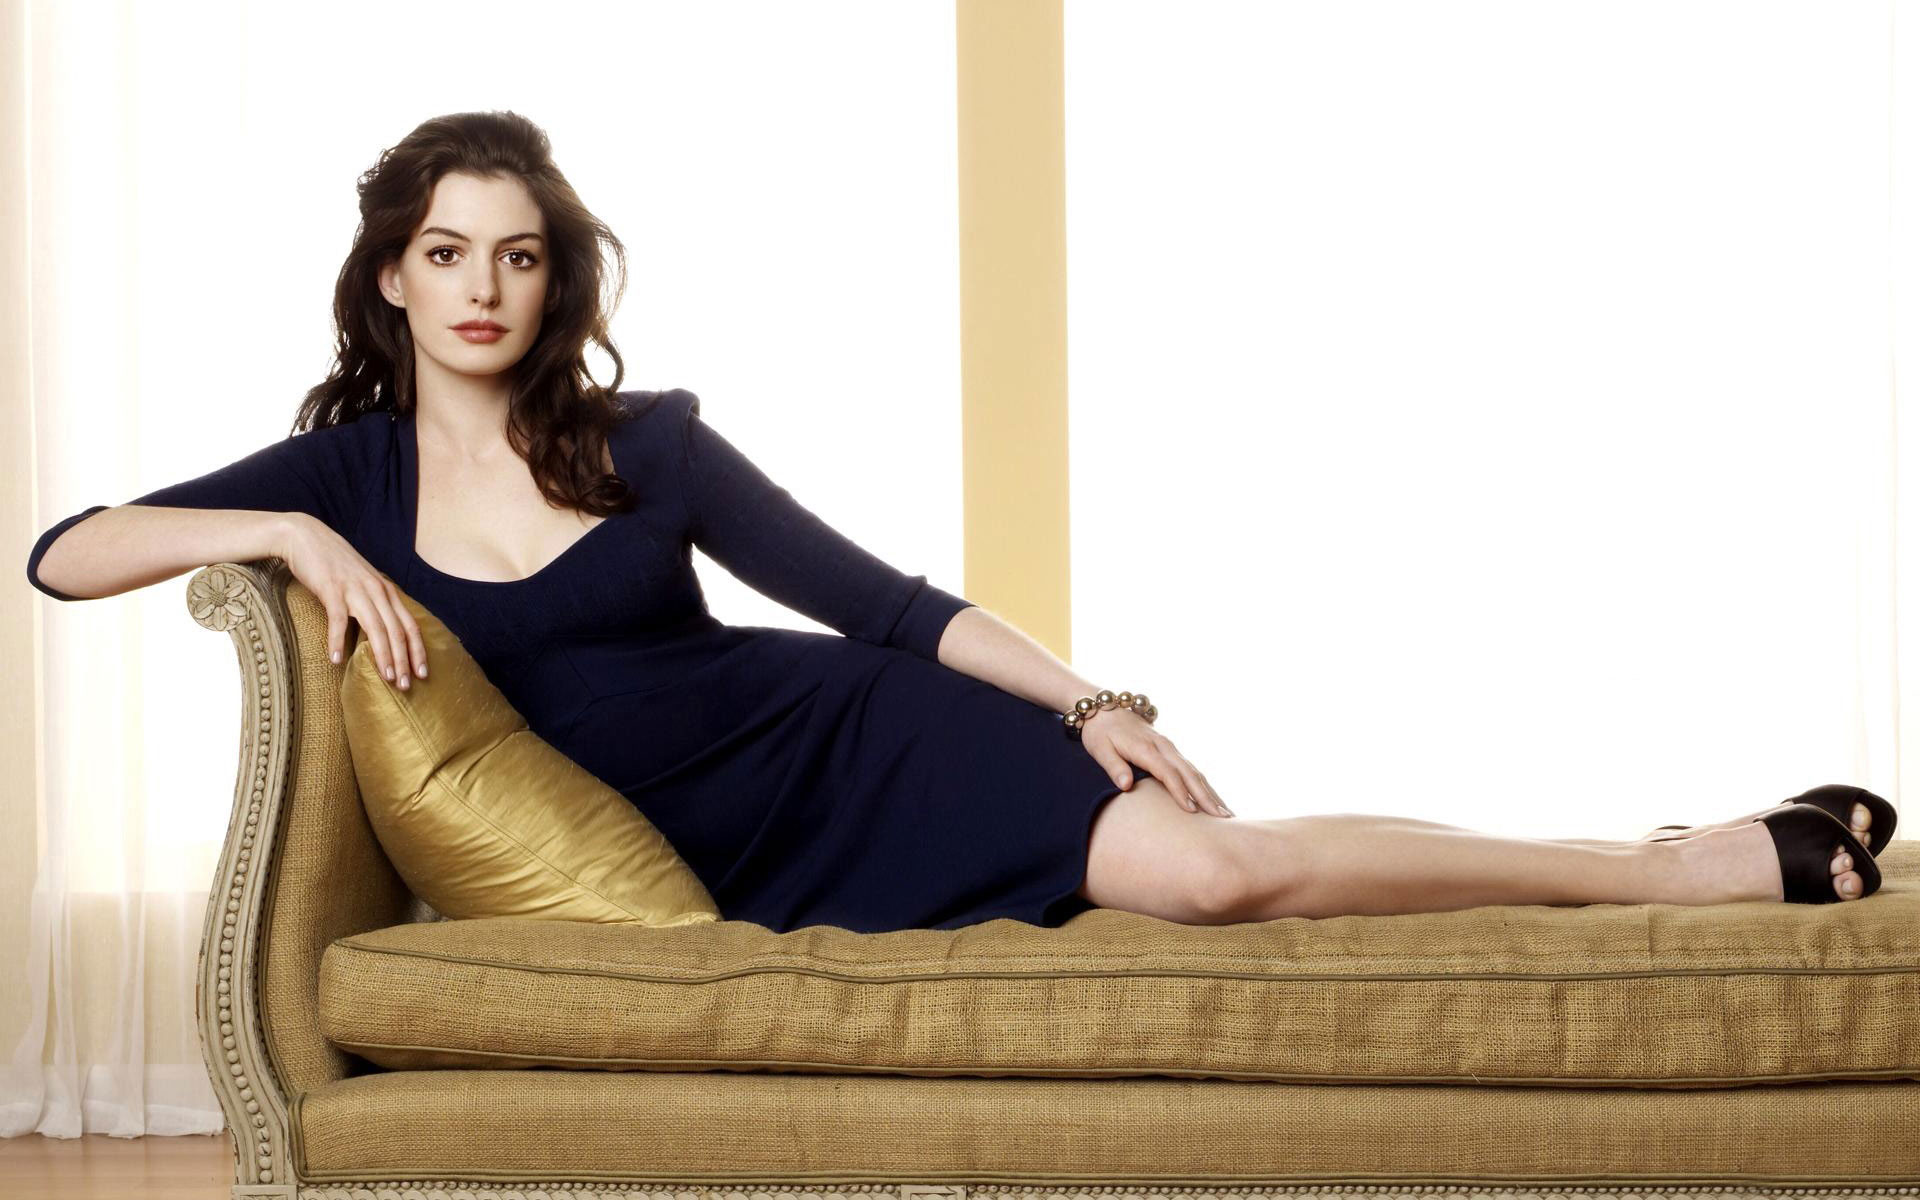 Bride Wars Actress Anne Hathaway 403.78 Kb